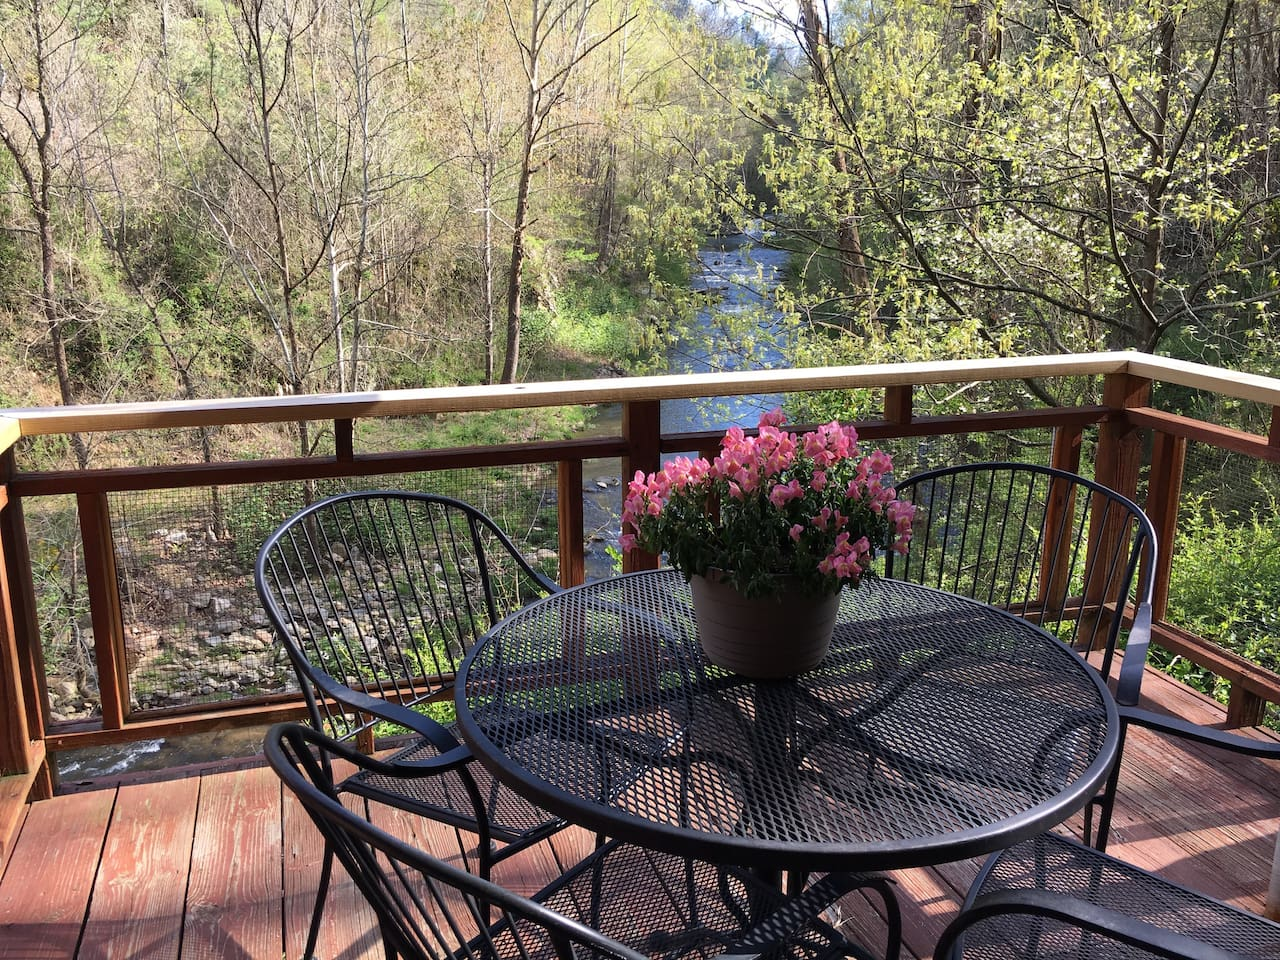 Wonderful back porch where you get lulled into relaxation with all the sounds of nature and the rushing waters